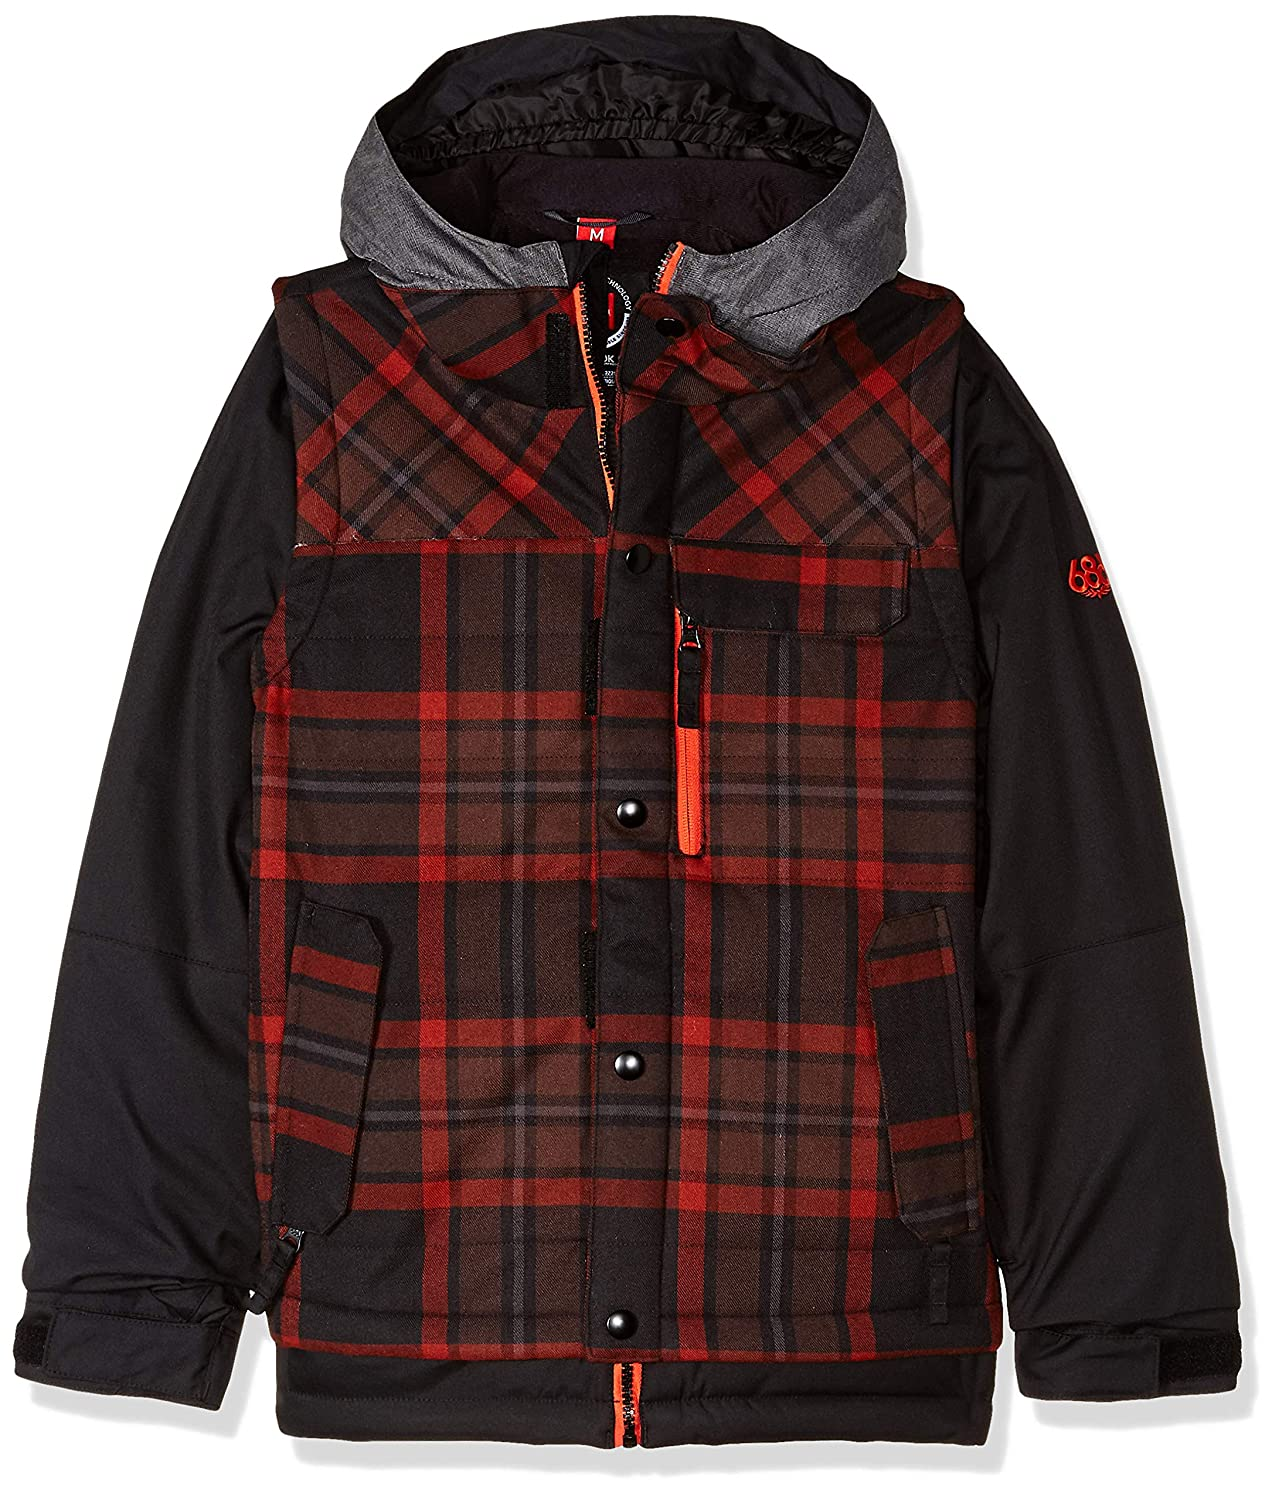 Image of 686 Boys' Scout Insulated Jackets | Waterproof Ski/Snowboard Coats